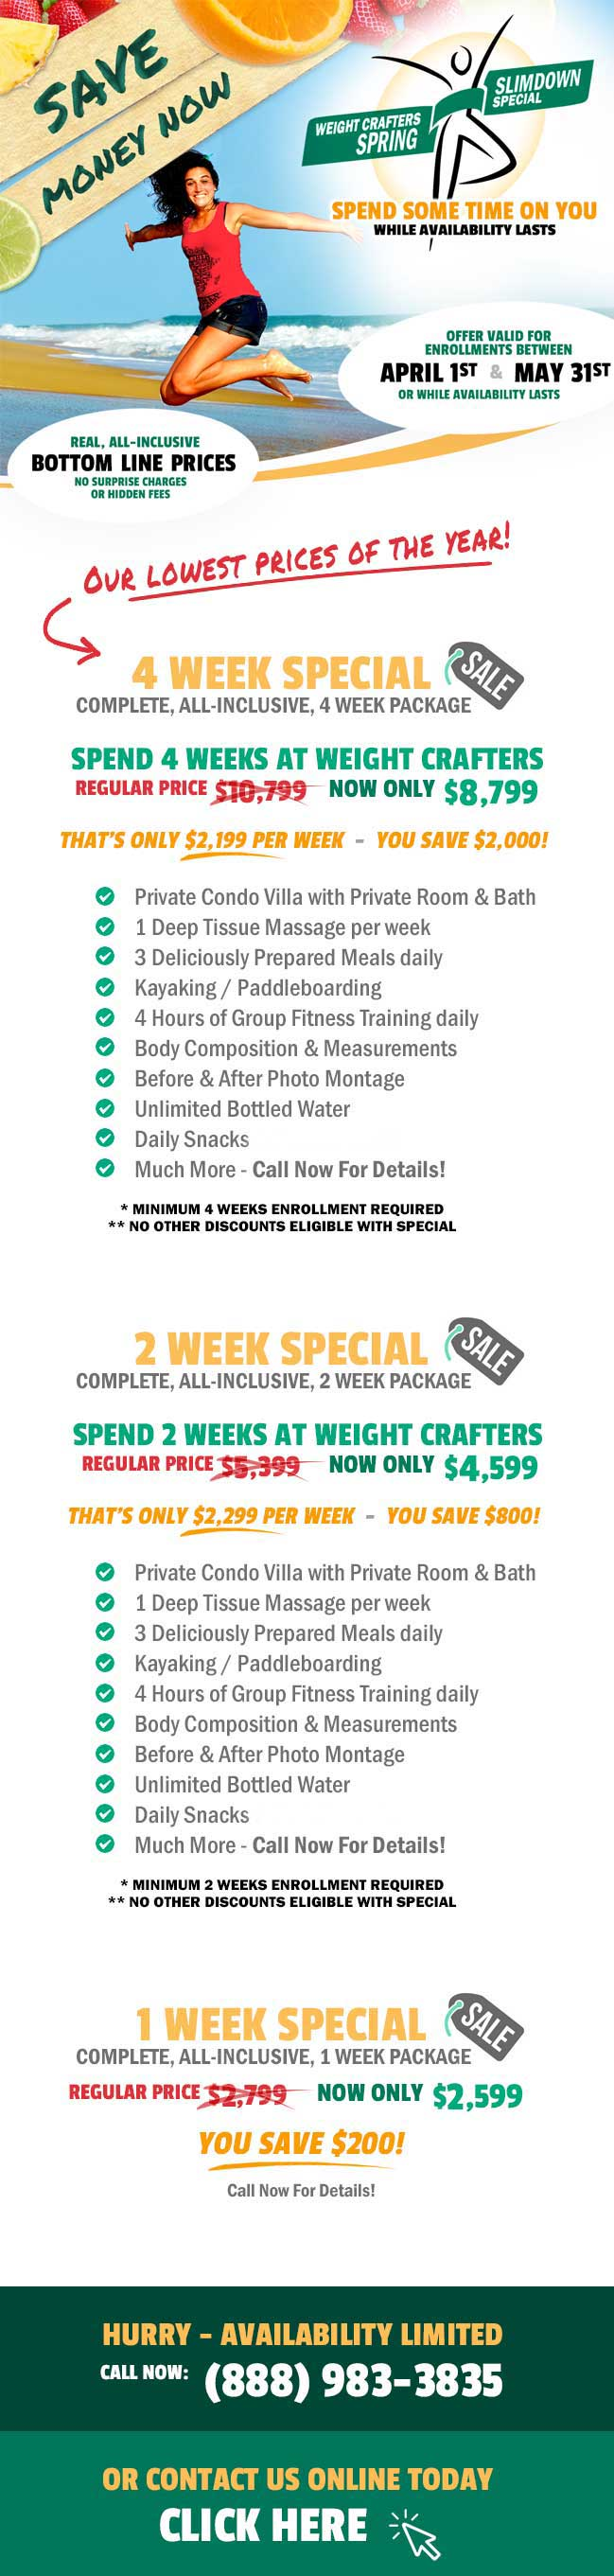 Special, limited time rates from Weight Crafters